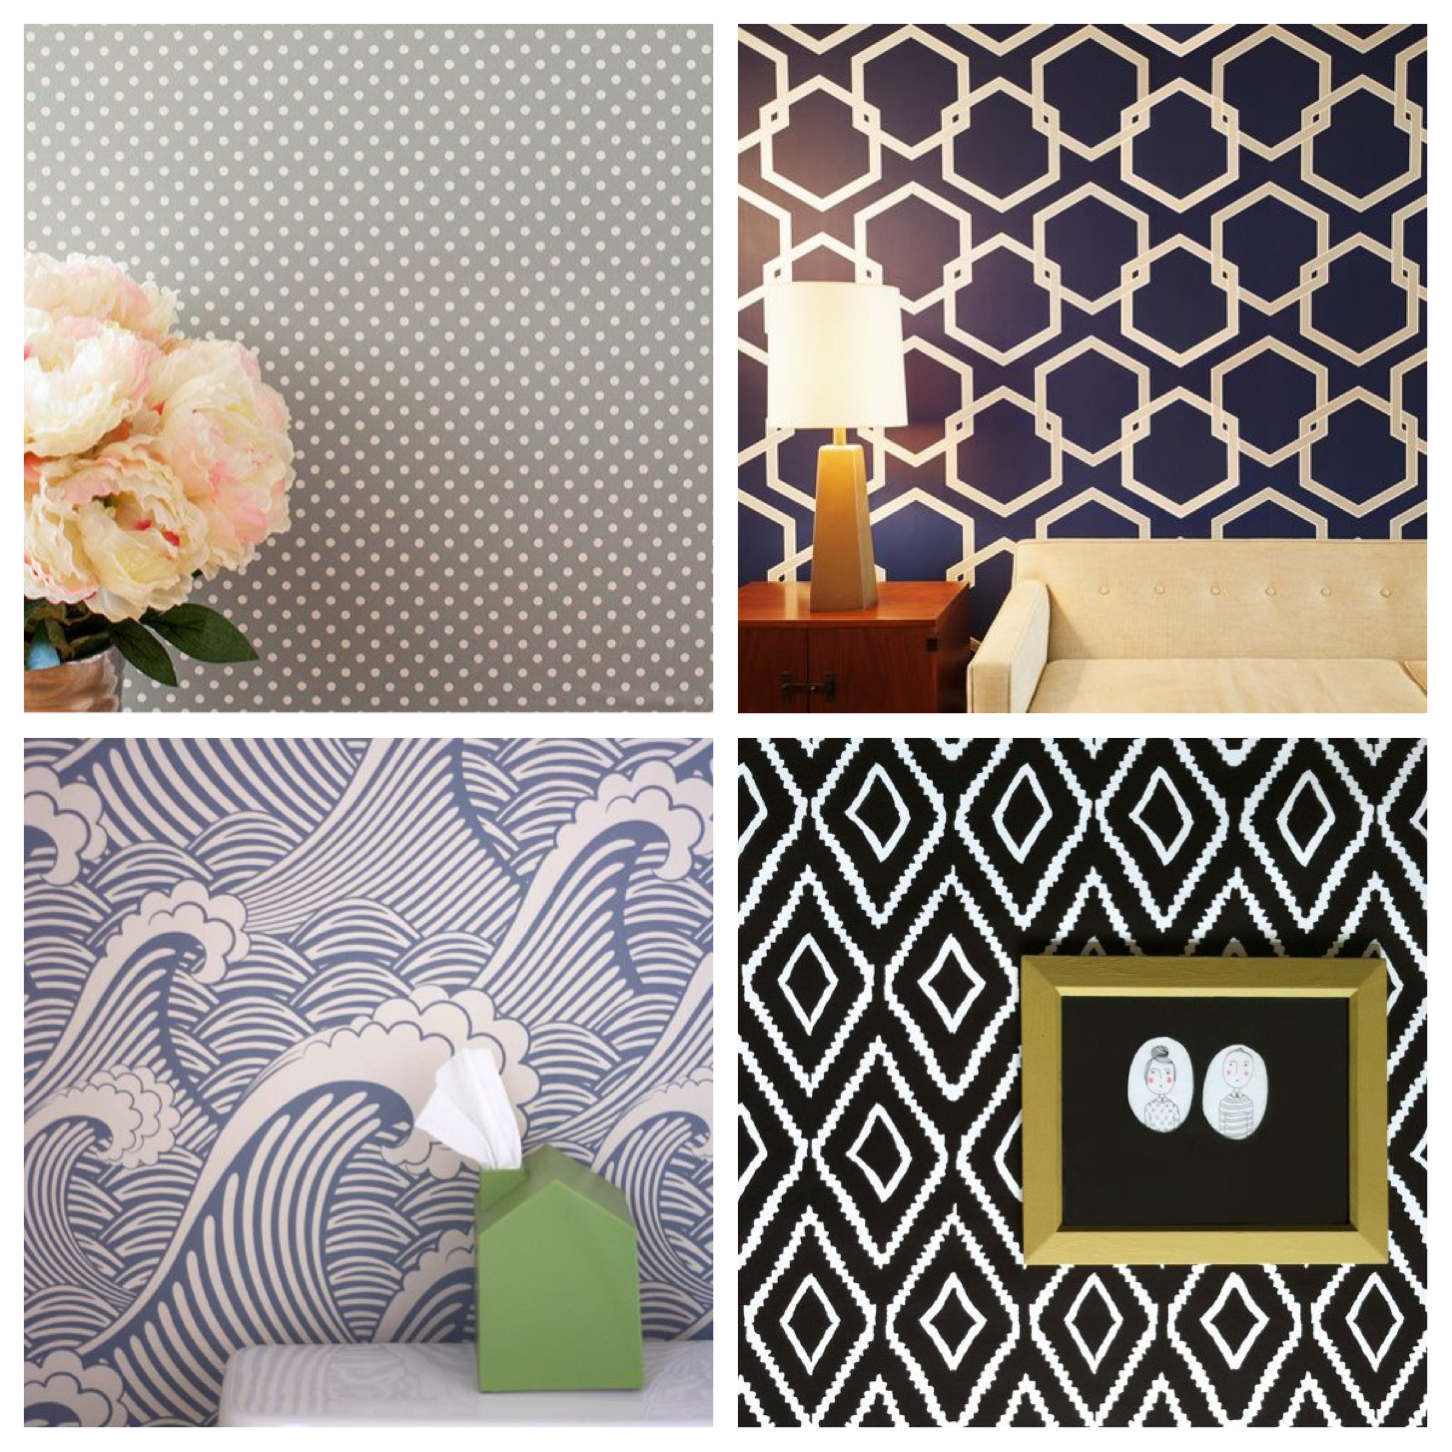 great deals on eBay for removable wallpaper self adhesive wallpaper 1452x1452